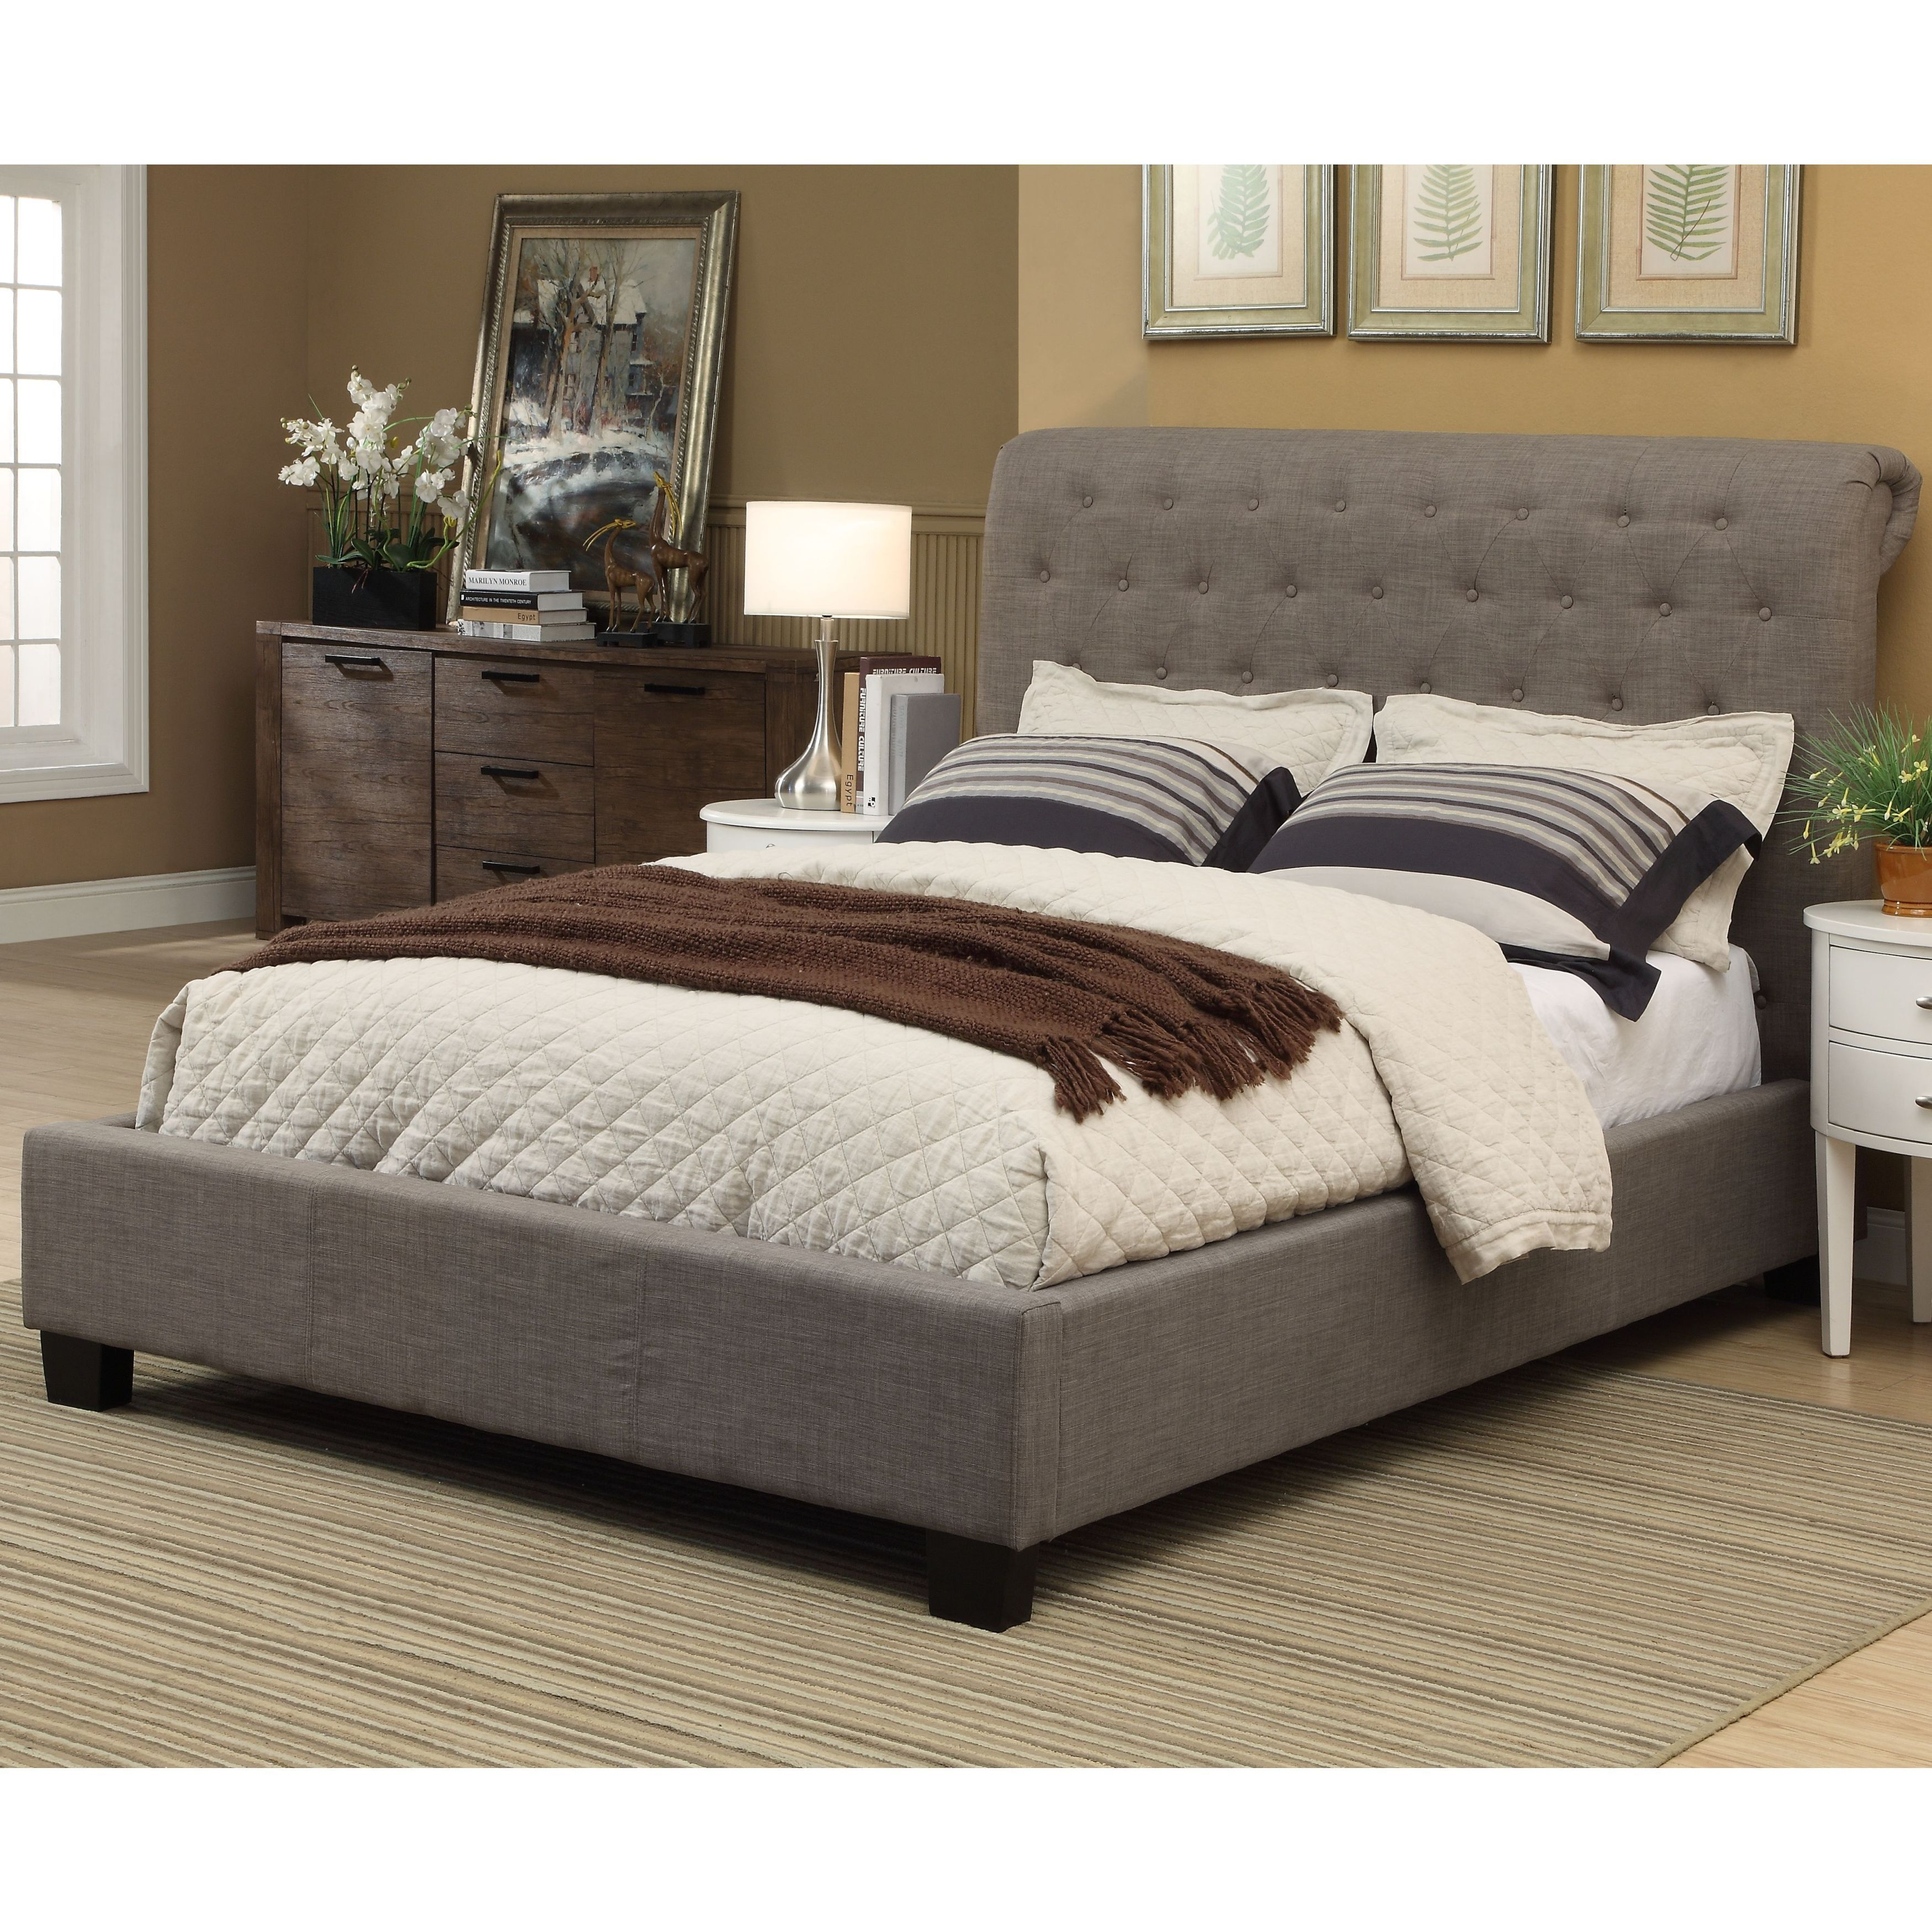 Modus Royal Tufted Platform Bed (Distressed - Queen), Brown